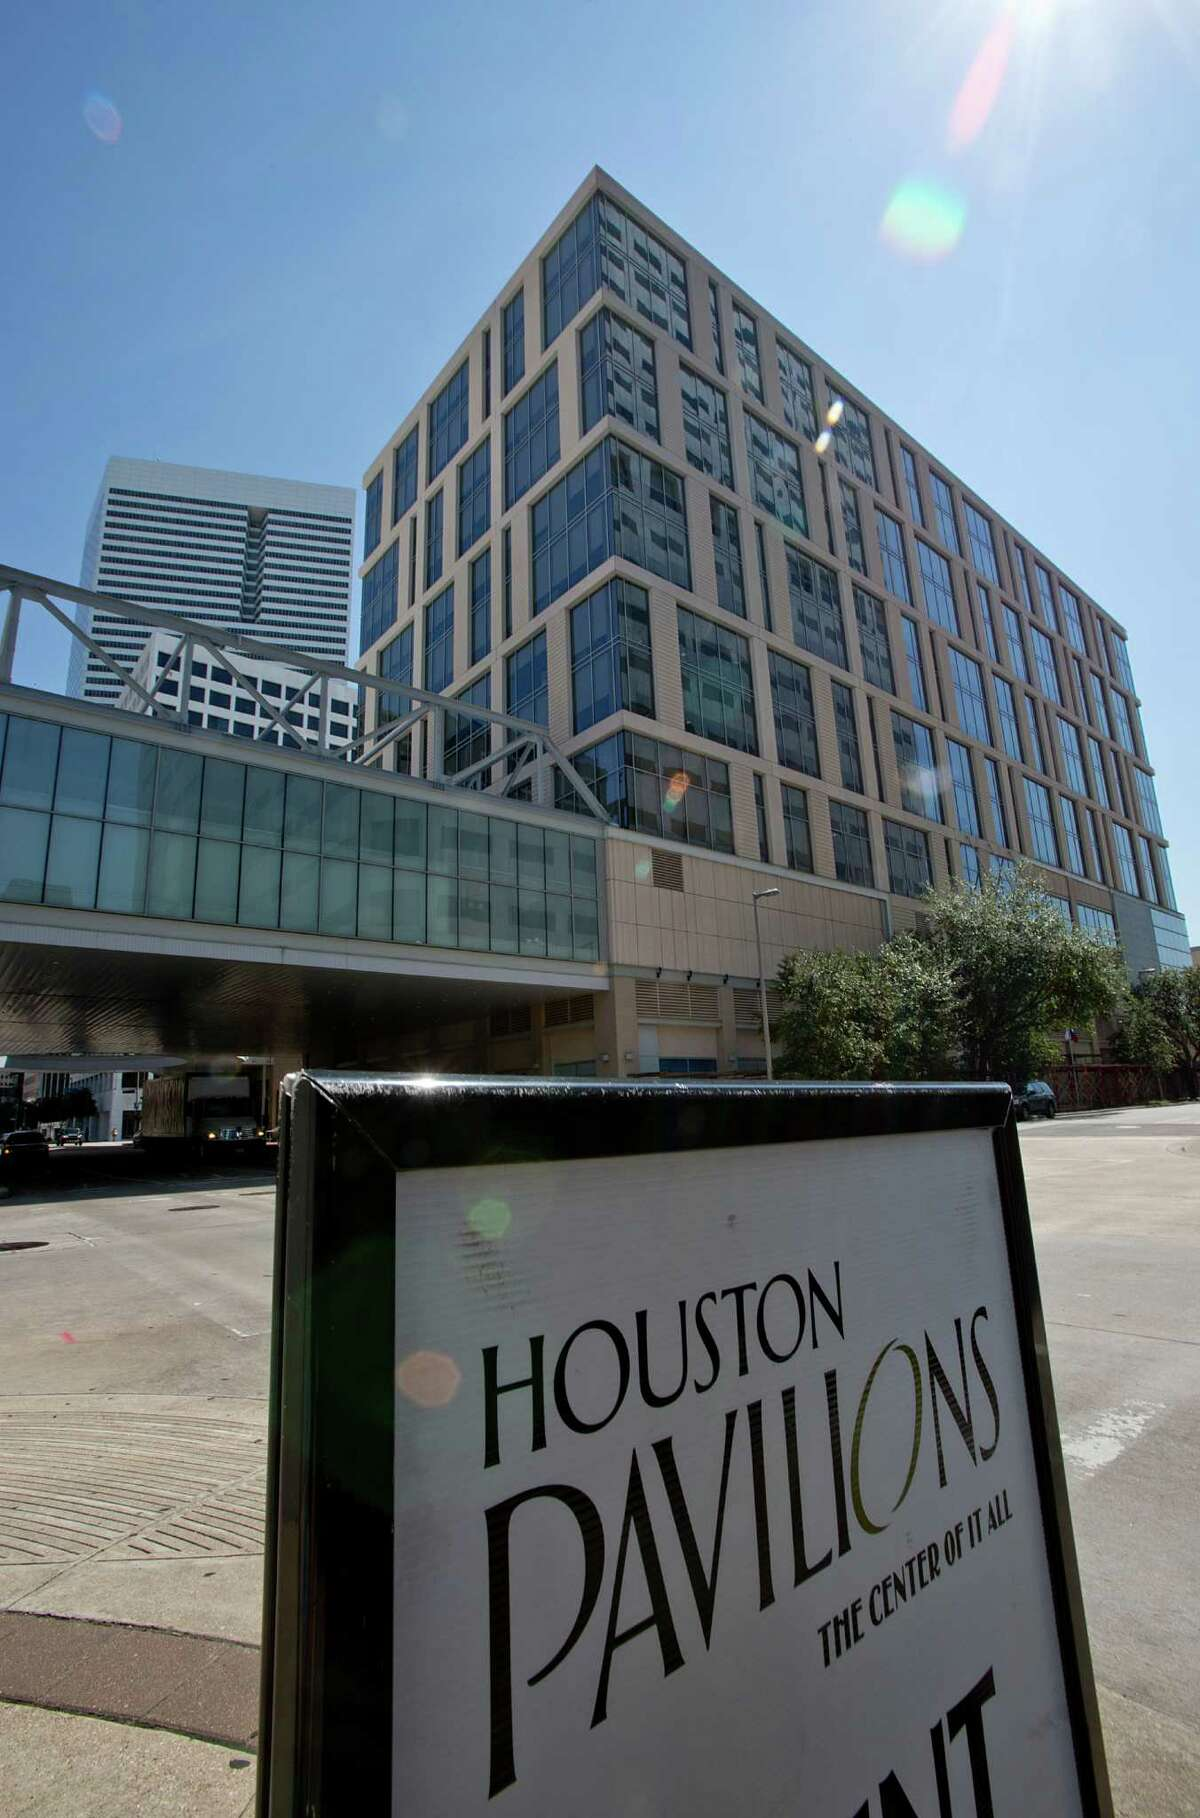 8/20/12 : Midway Cos., developer of CityCentre on the west side, is expected to announce the acquisition of the Houston Pavilions.